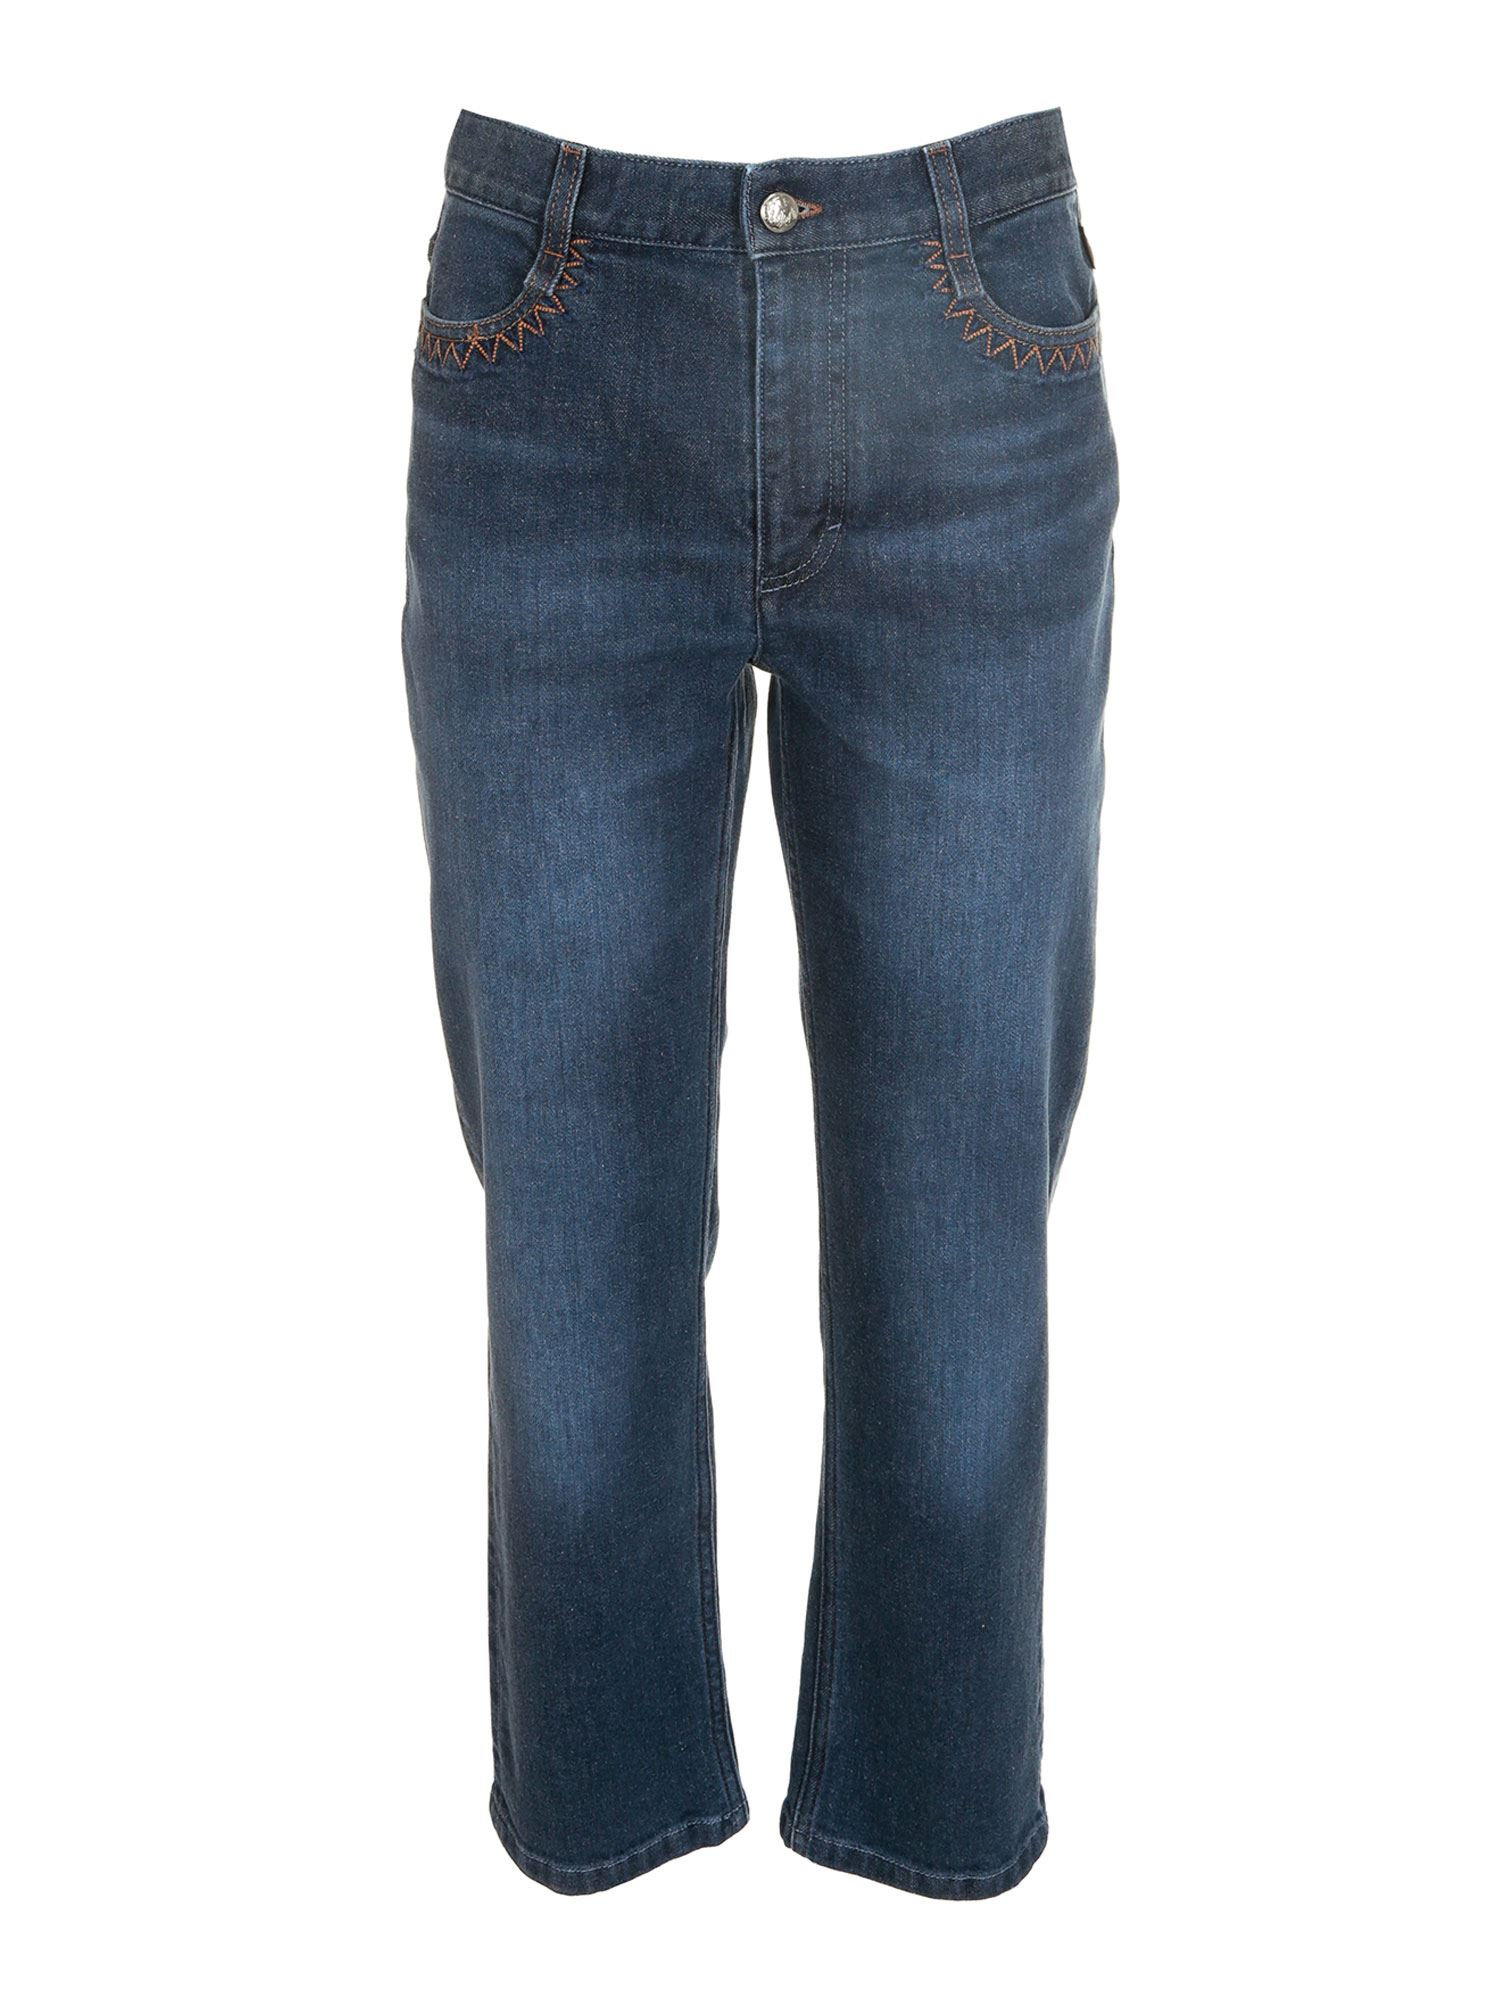 Chloé CROPPED JEANS IN BLUE